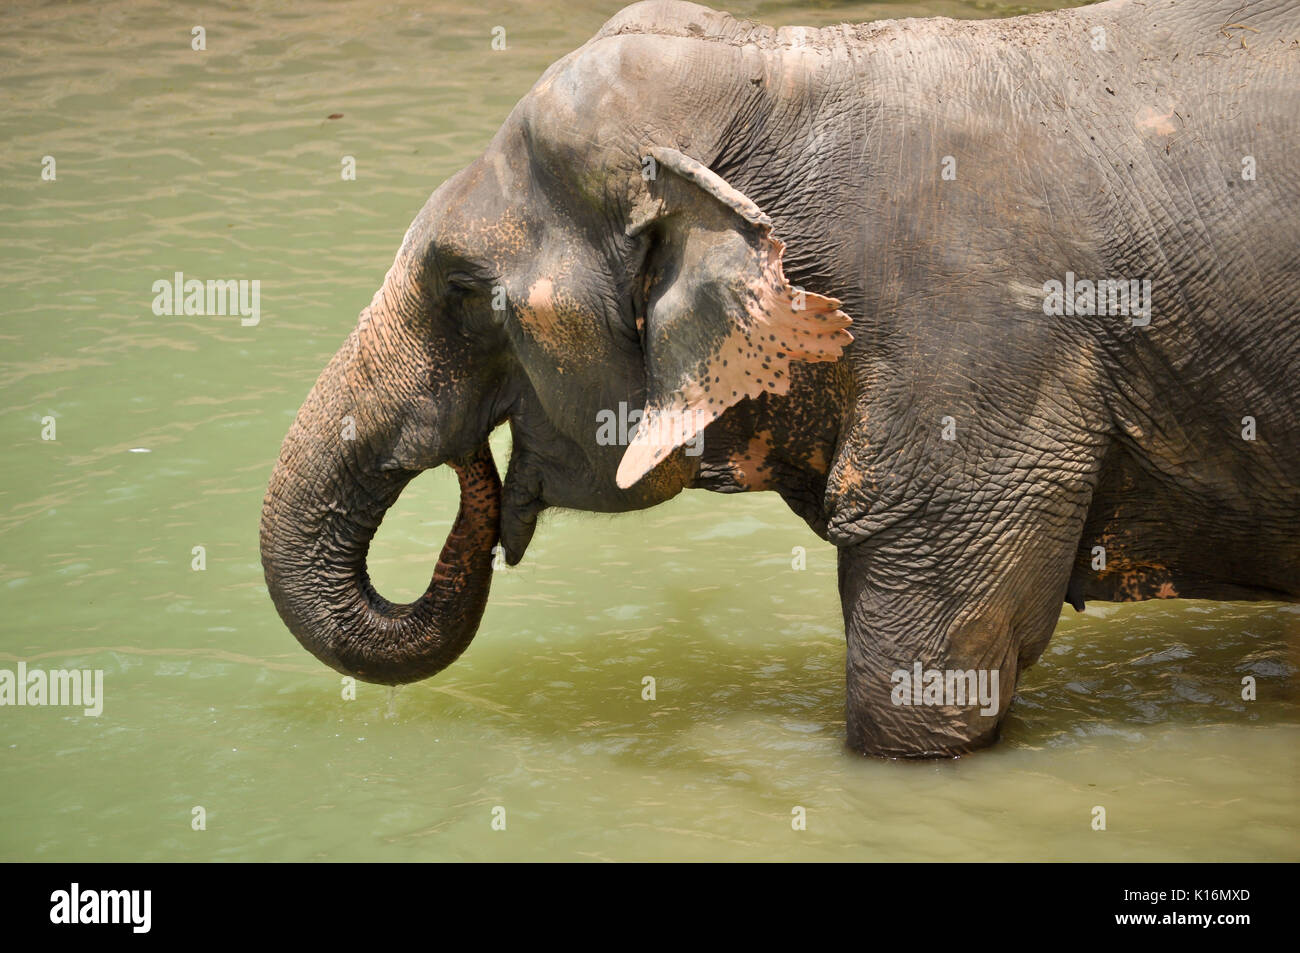 The trunk can hold about four litres of water. Elephants will playfully wrestle with each other using their trunks, but generally use their trunks onl - Stock Image